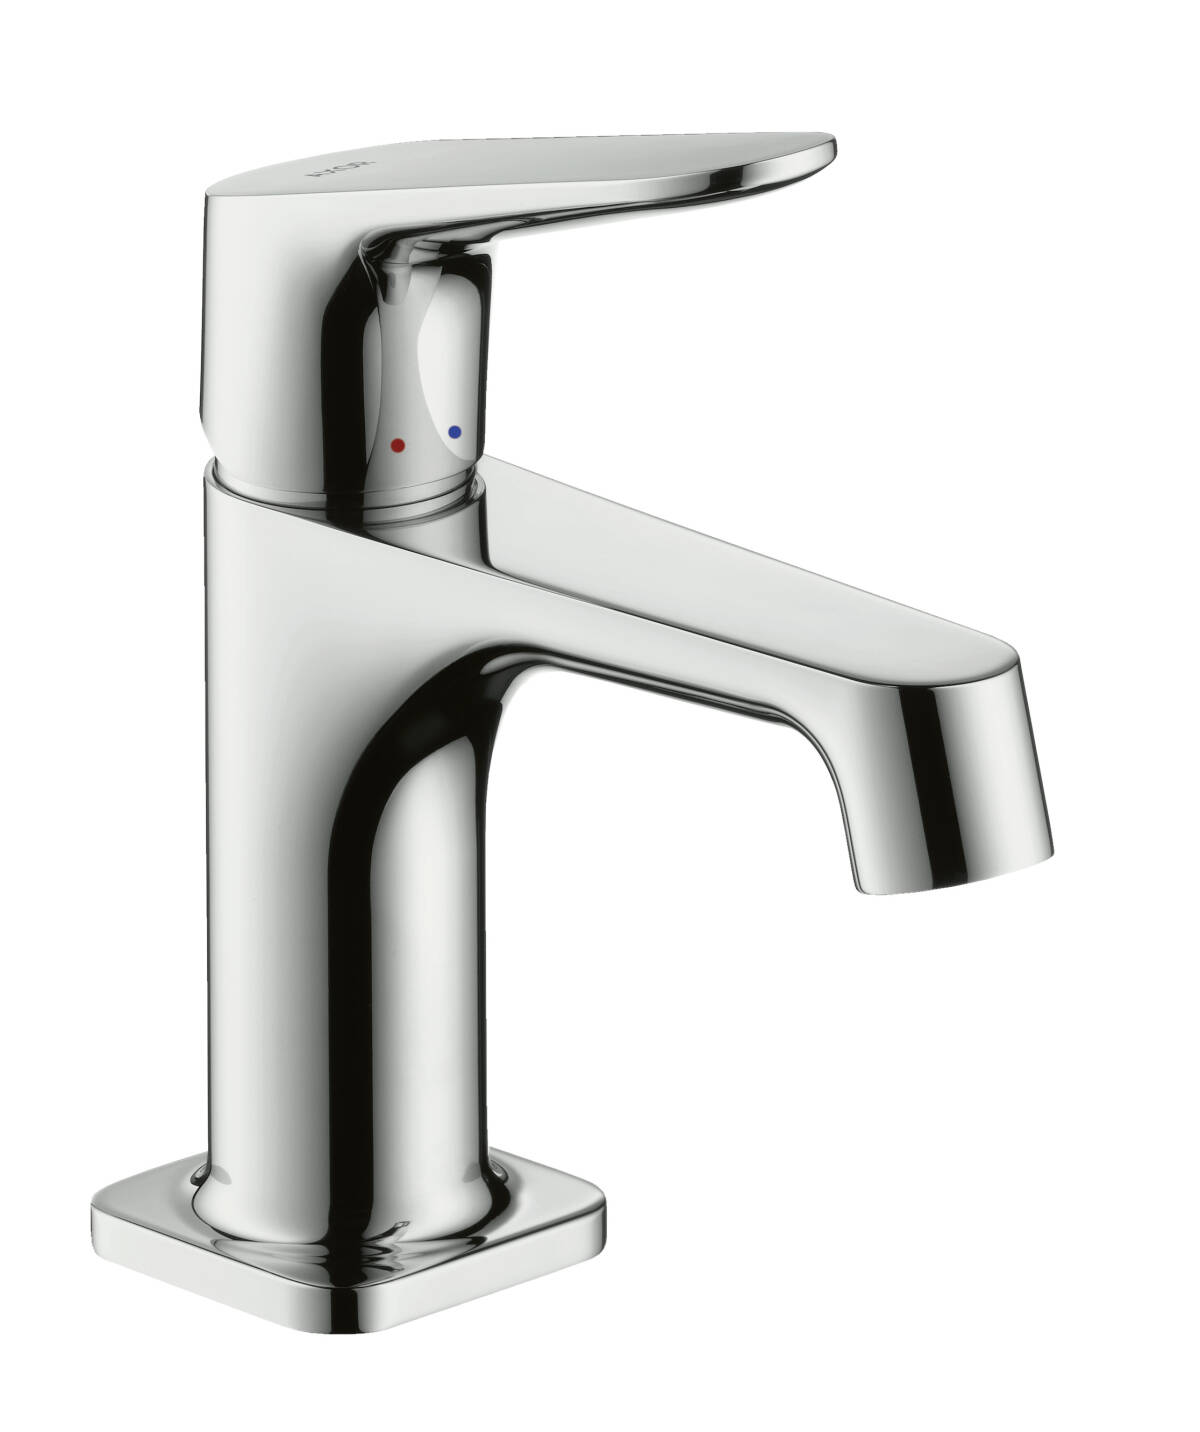 Single lever basin mixer 70 for hand washbasins with pop-up waste set, Polished Red Gold, 34016300